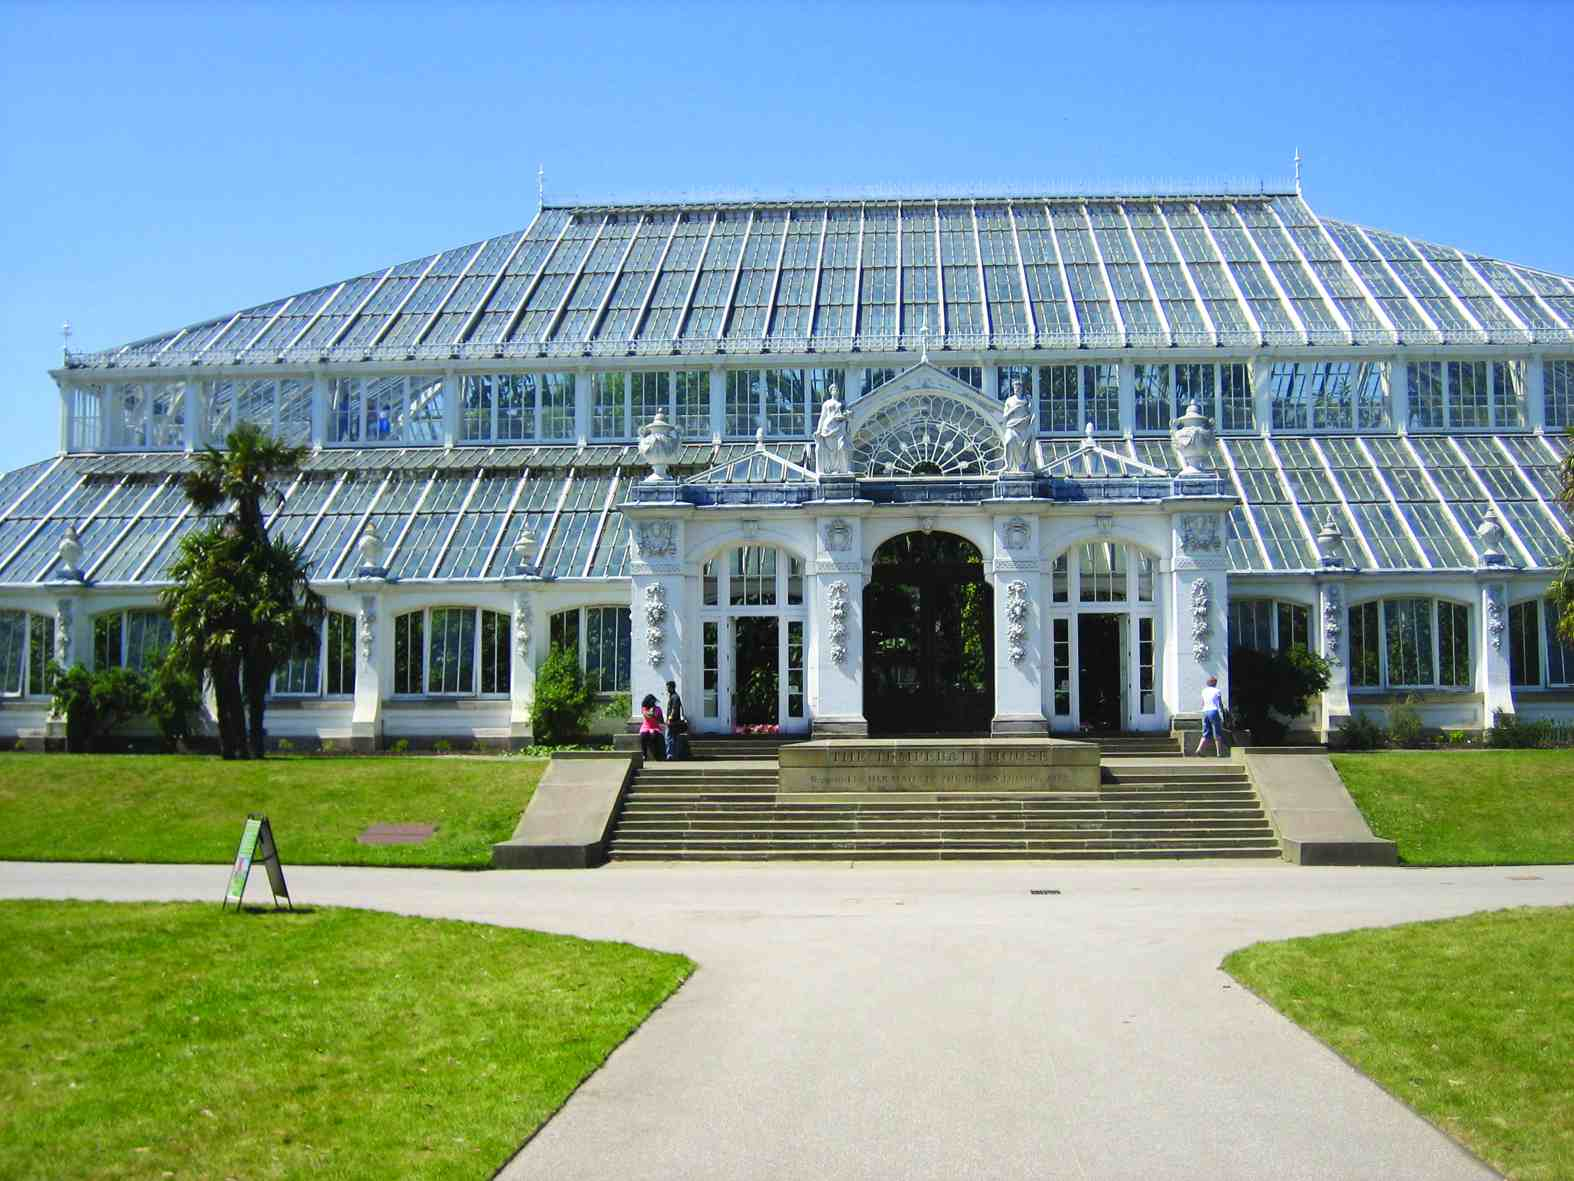 Replacement Urns and Finials for The Temperate House at Kew Gardens